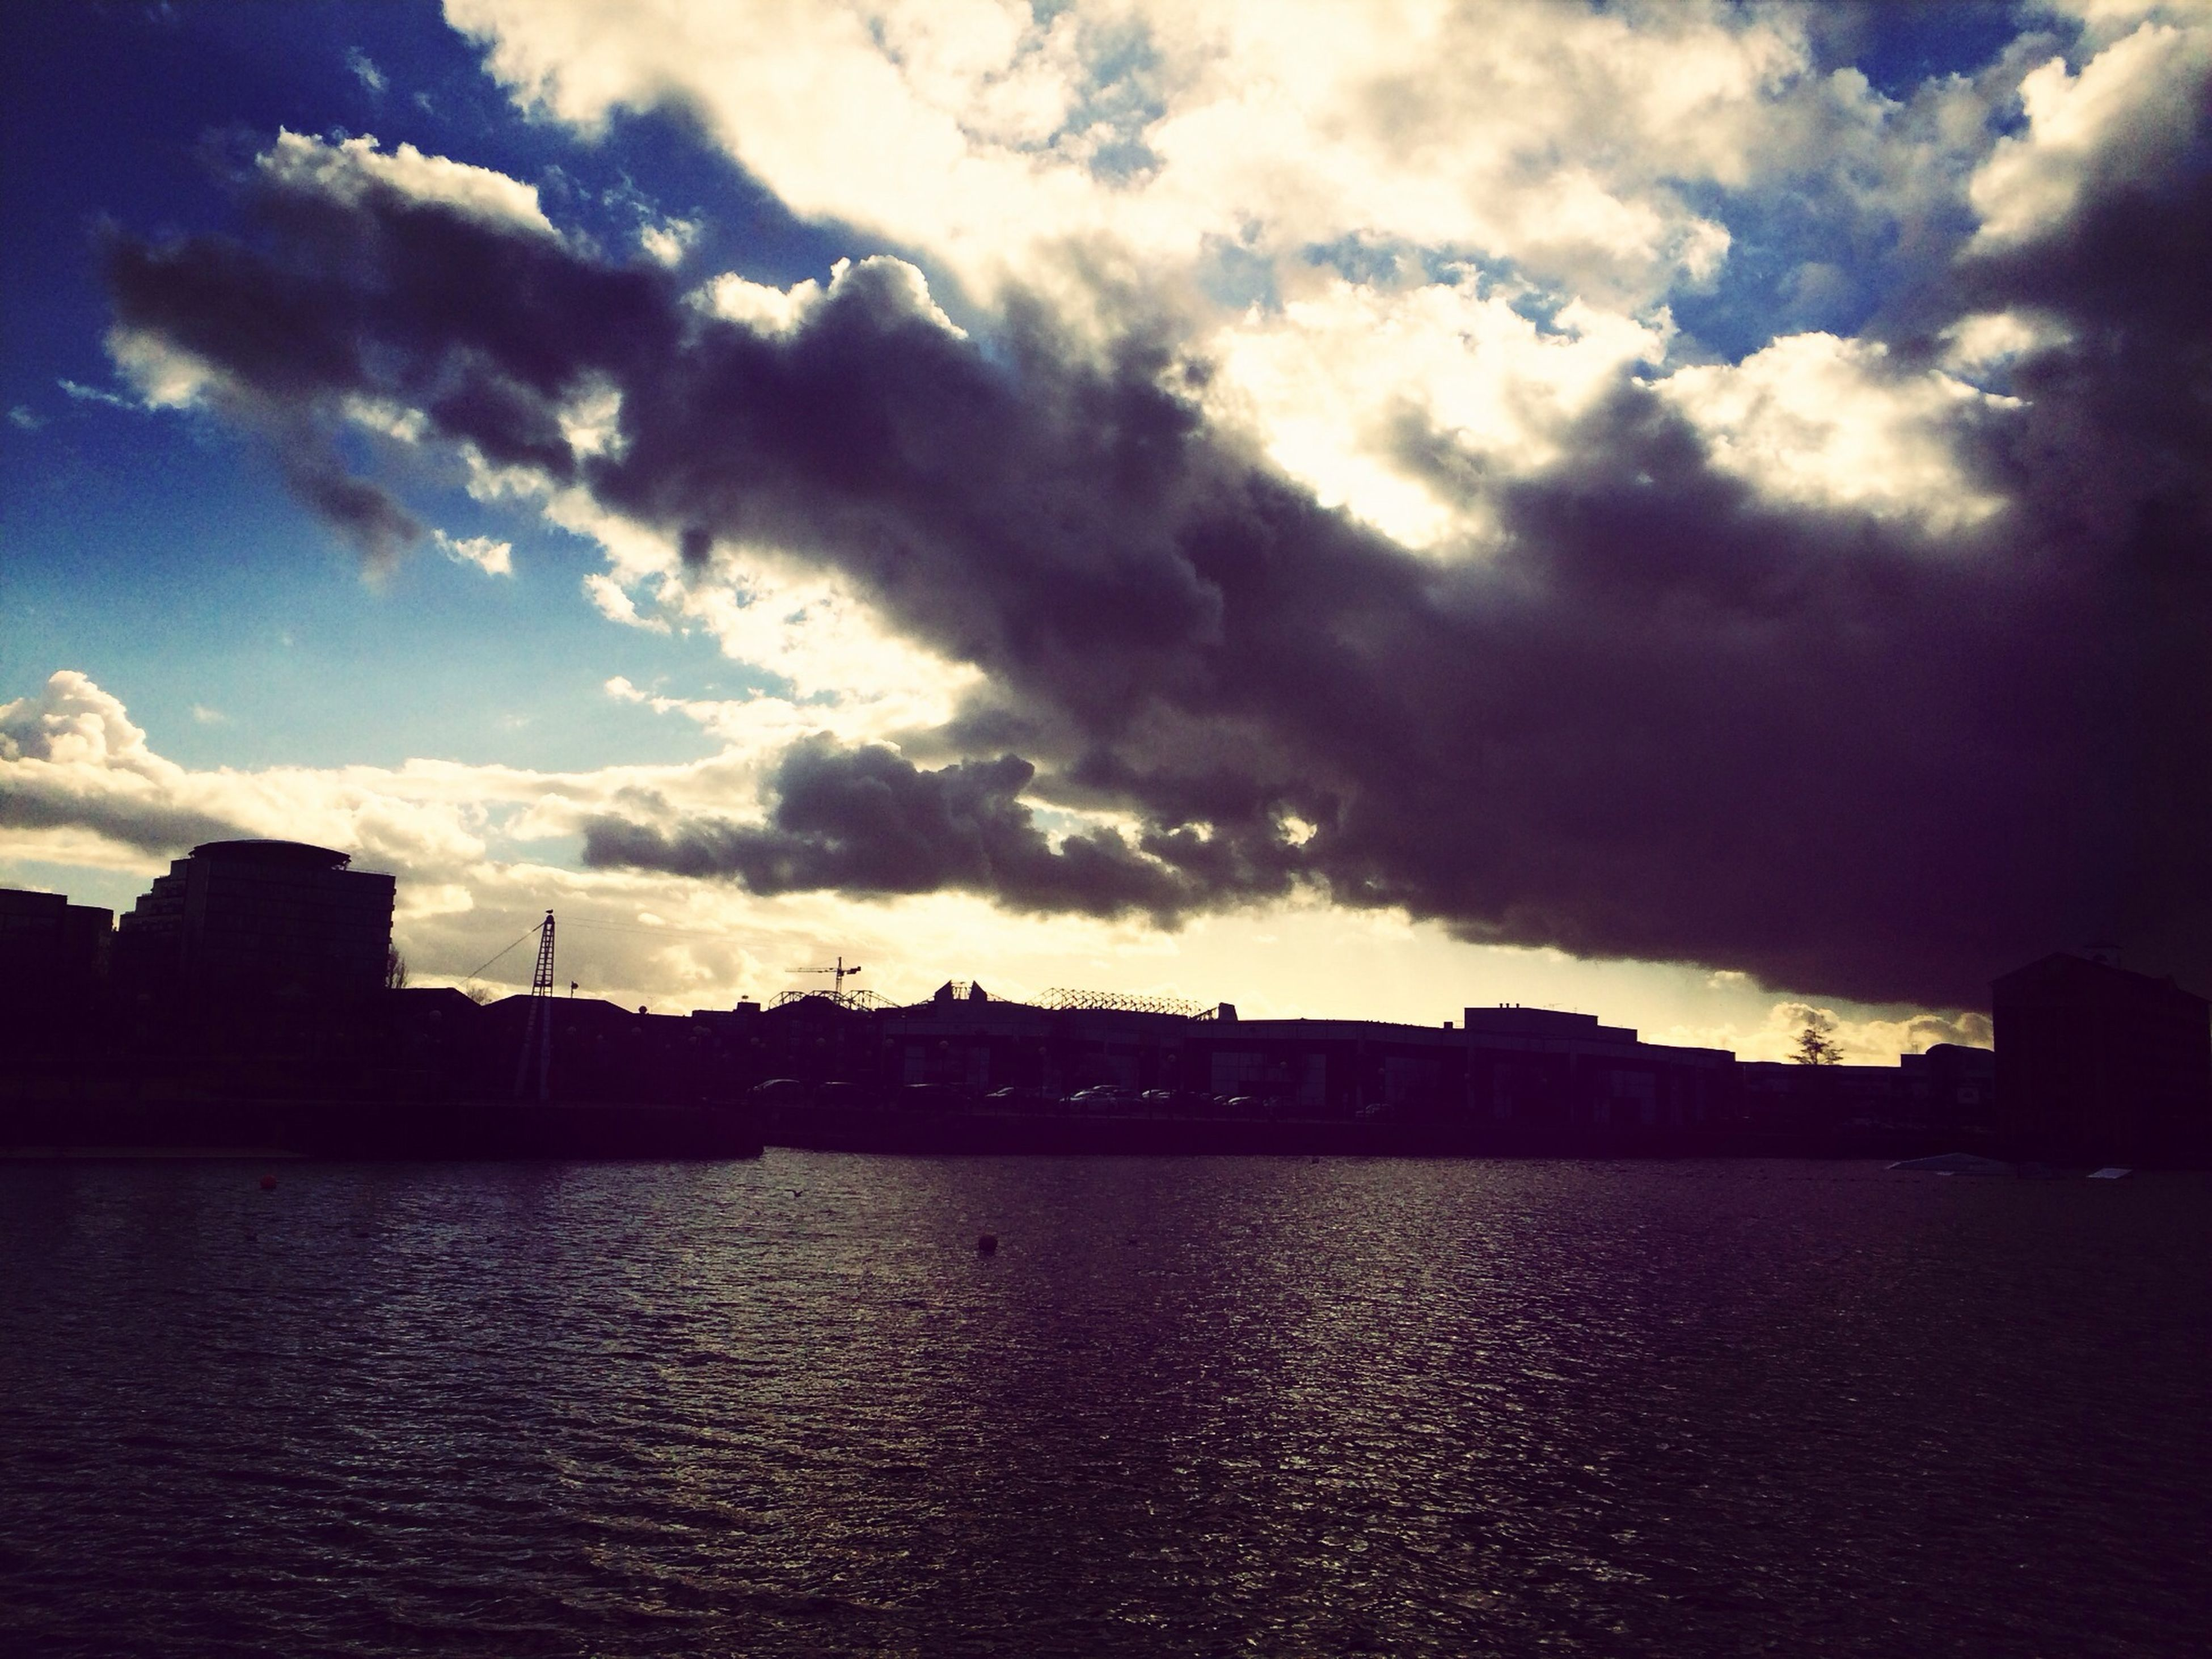 architecture, sky, building exterior, built structure, cloud - sky, silhouette, waterfront, water, sunset, cloudy, cloud, city, river, dusk, nature, scenics, building, weather, outdoors, residential building